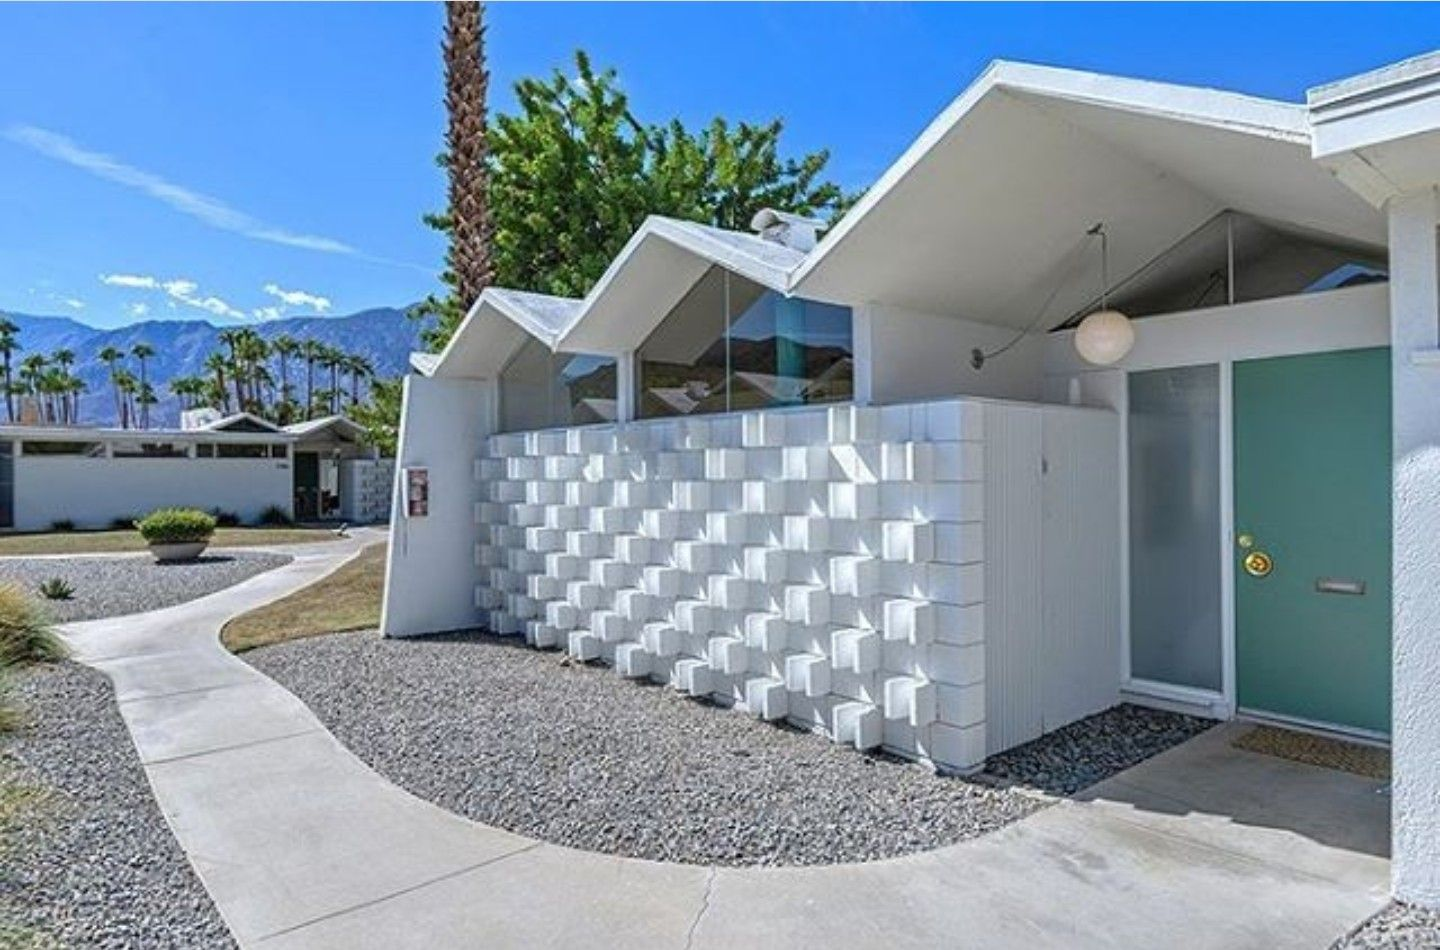 Pin by michelle oliver on MCM homes Modernism week palm